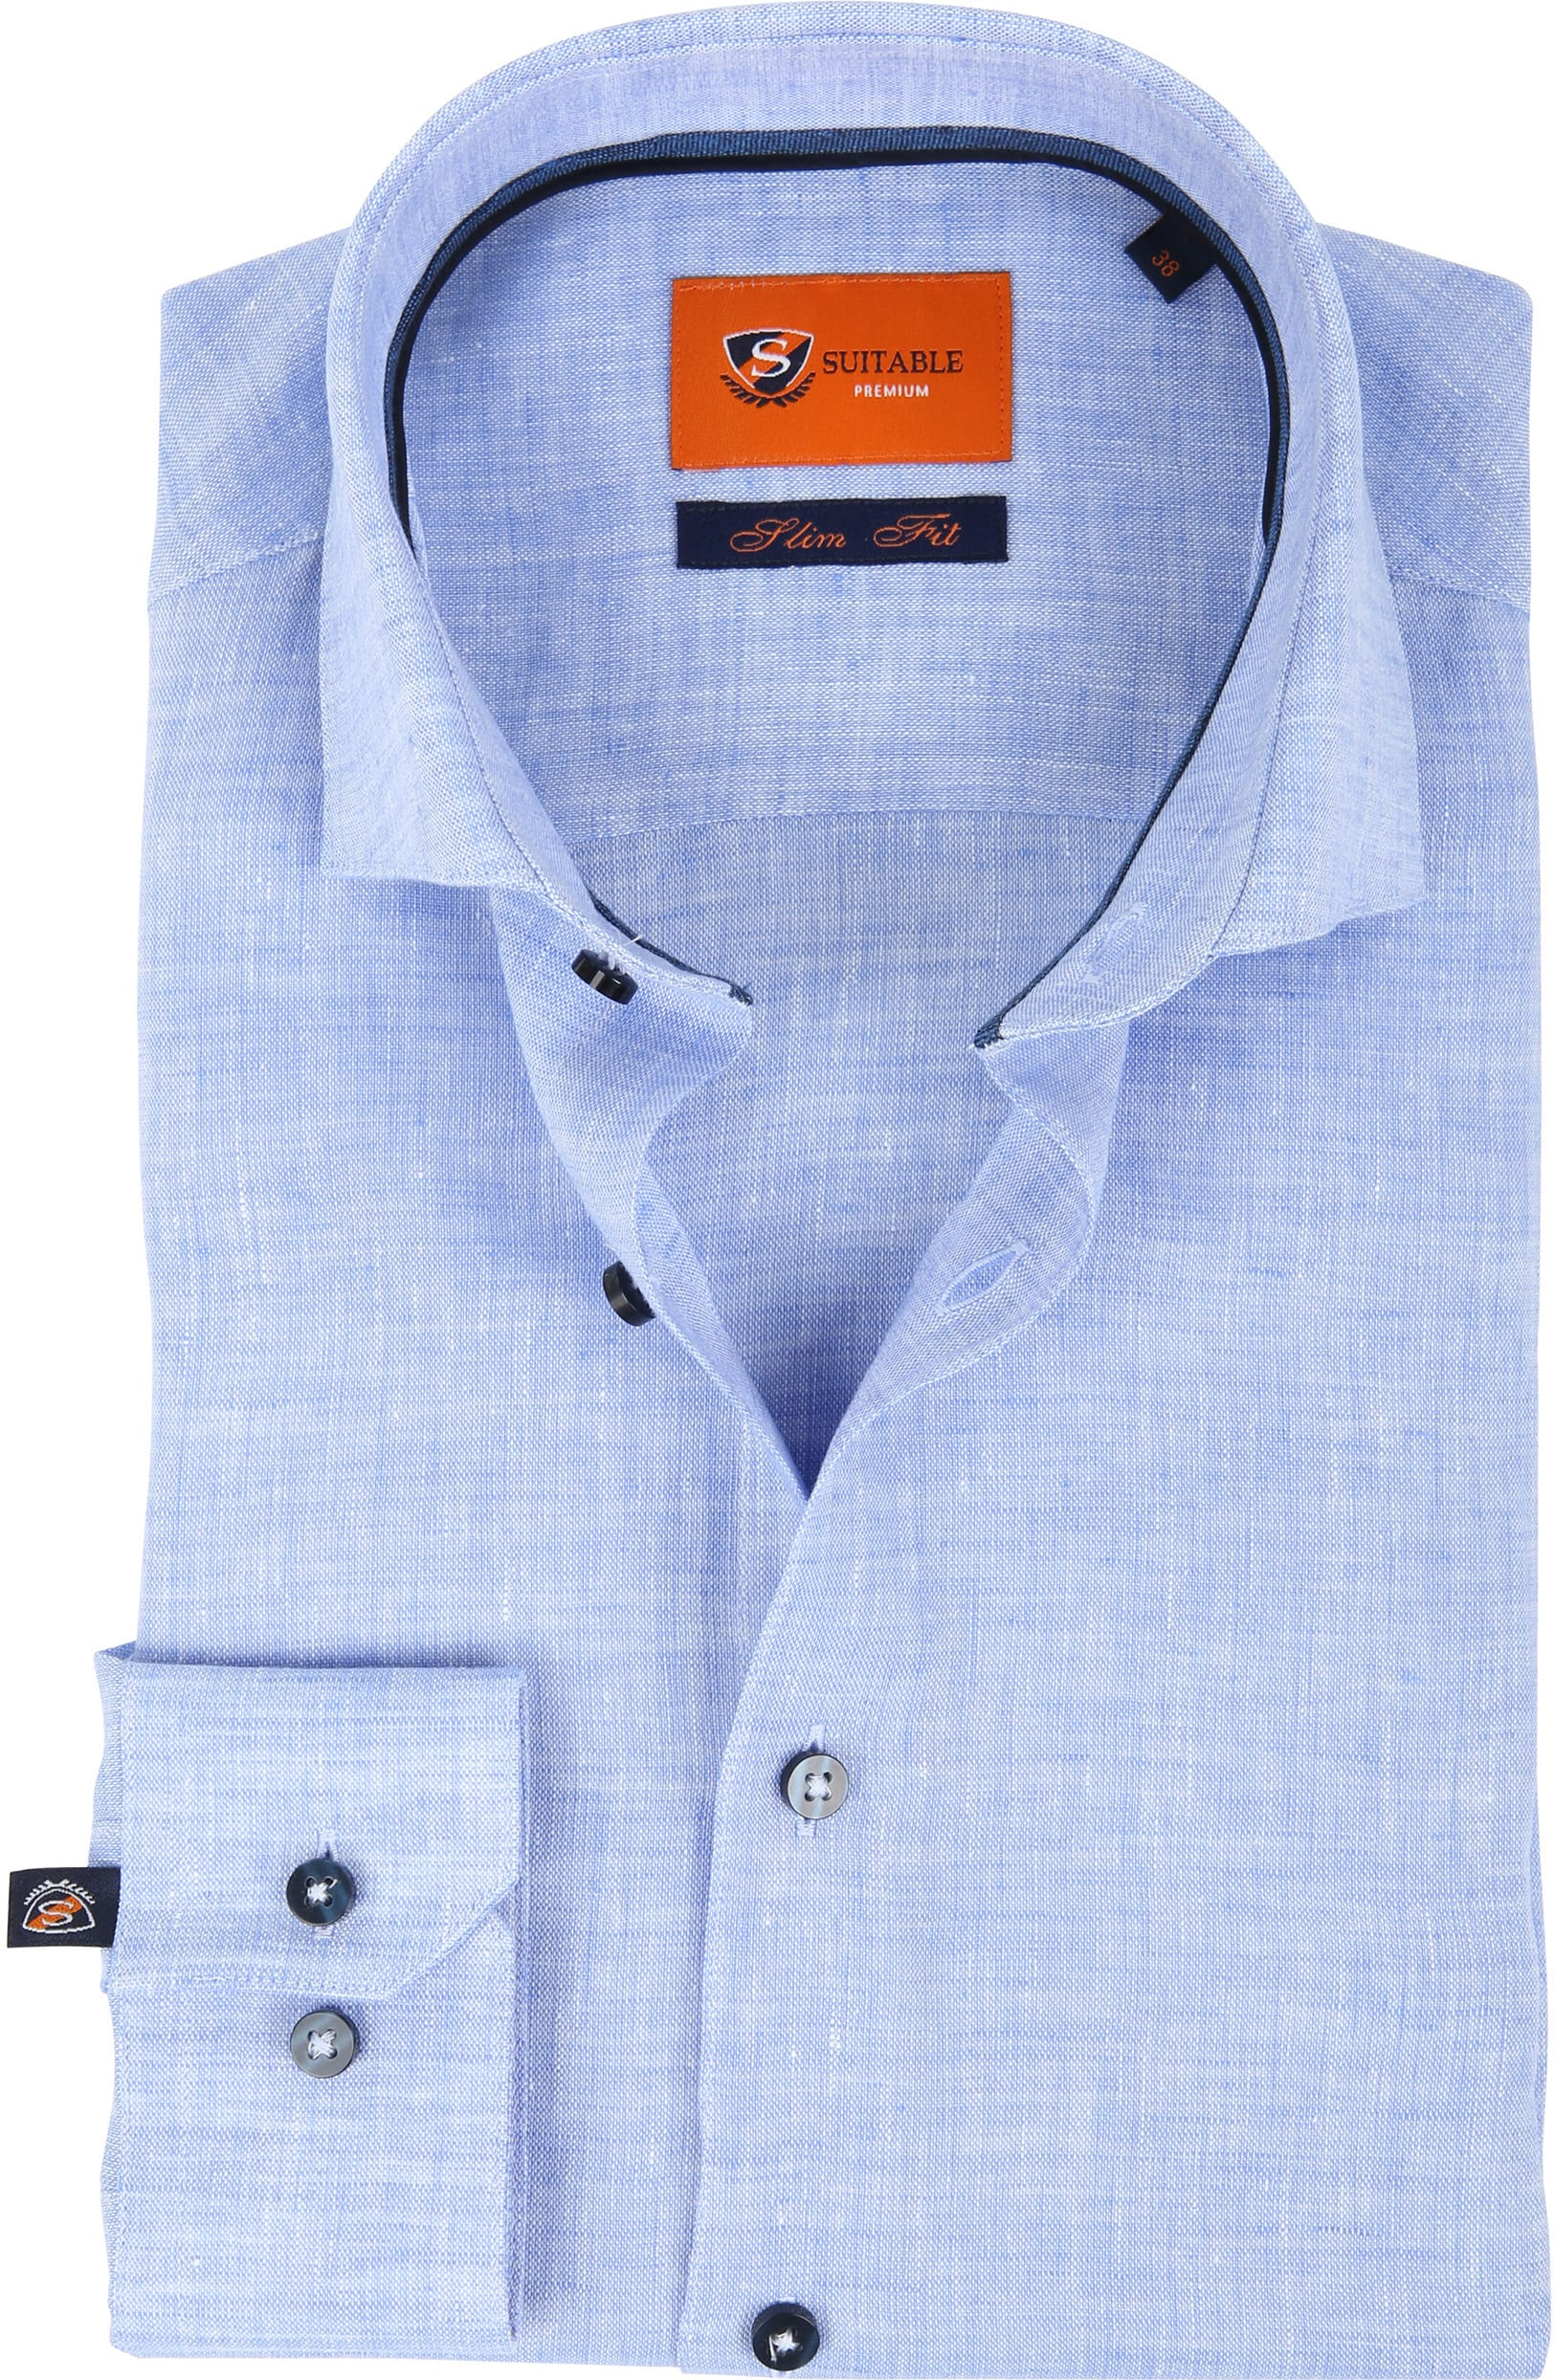 Suitable Shirt Linen Blue D81-12 photo 0